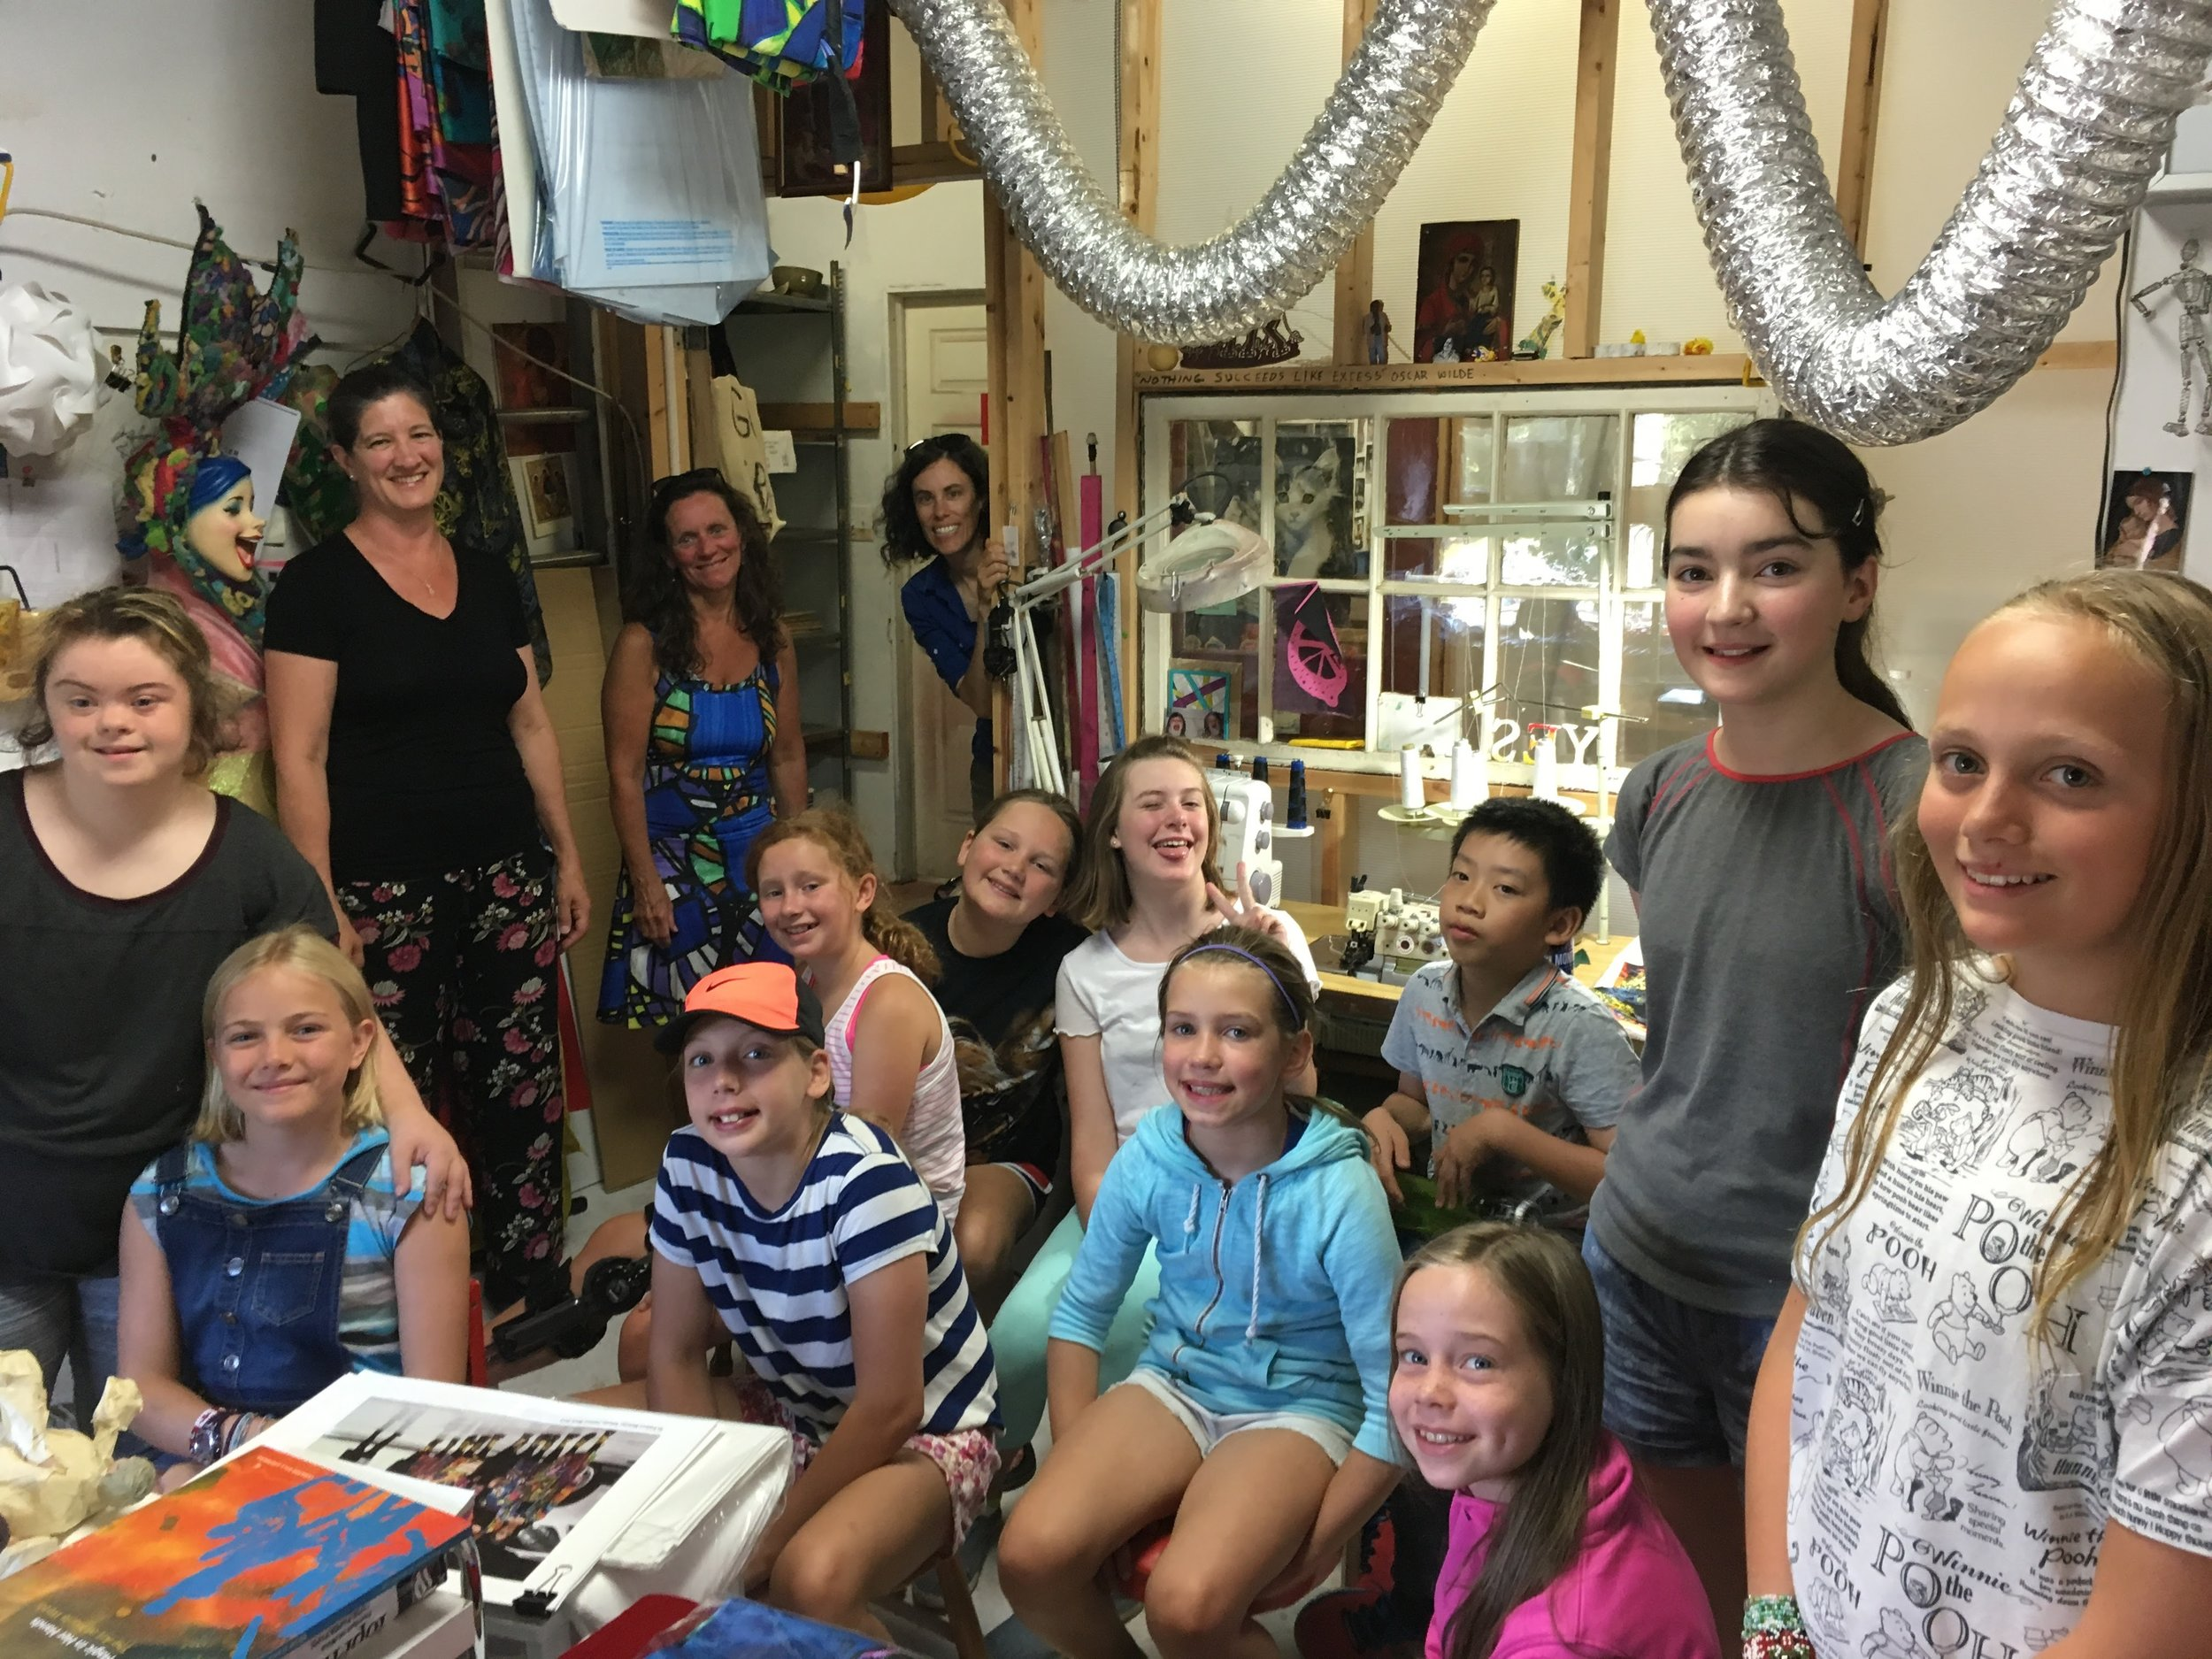 A mid-week visit by Armbrae Academy artists in Cynthia Lewis's summer session: checking out Lemonade Stand Design and learning about artist Marie Webb's process.